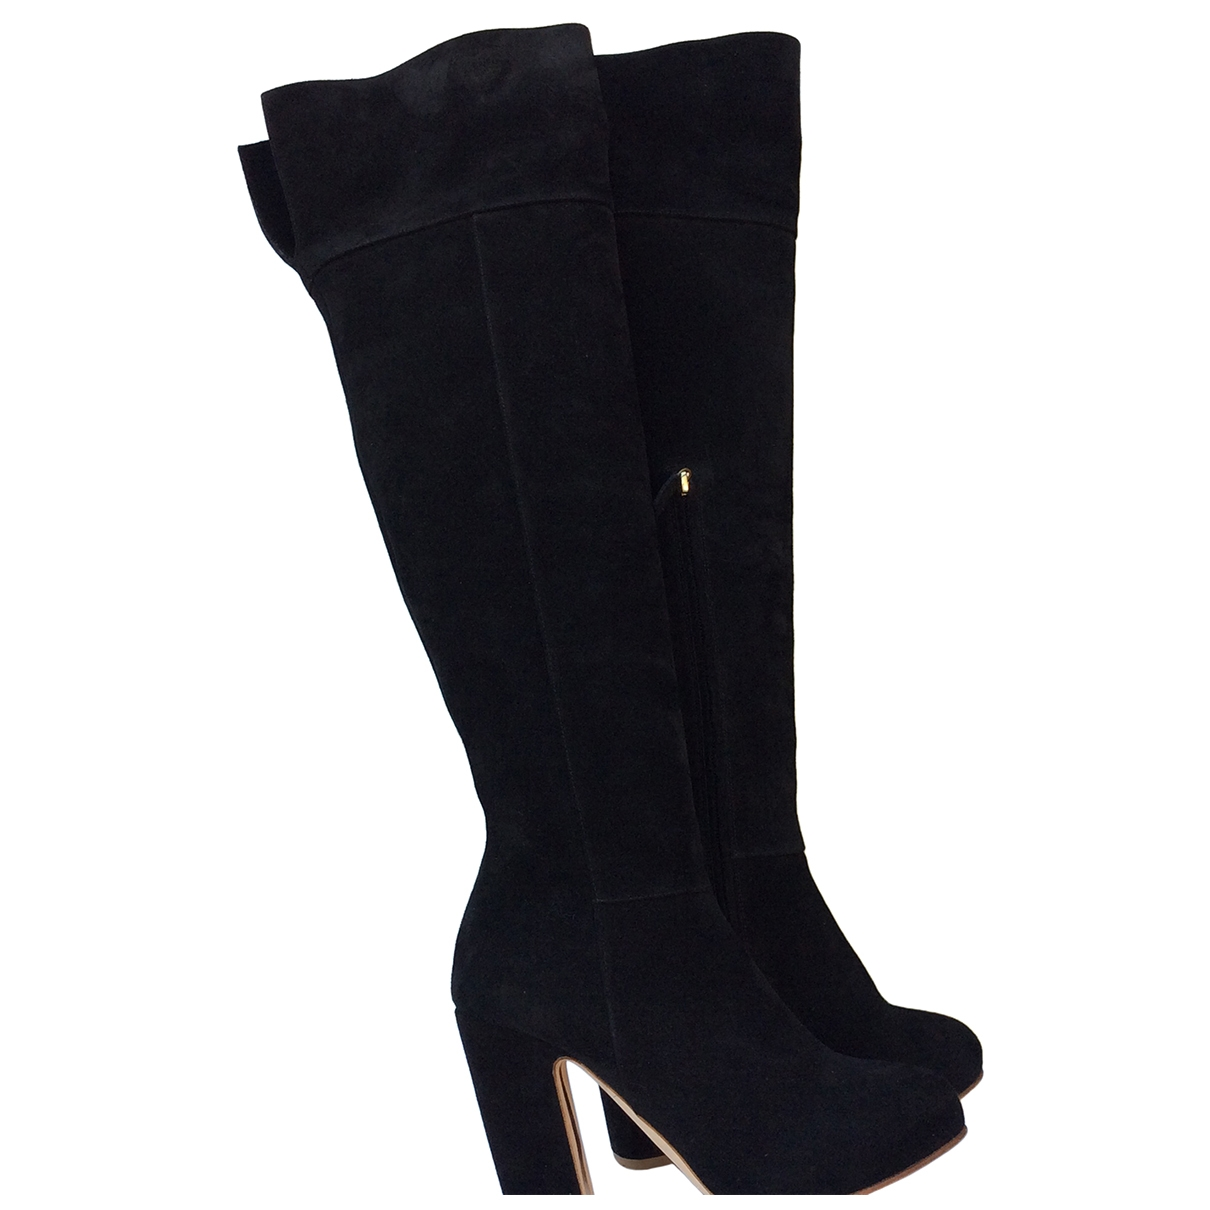 Stuart Weitzman \N Black Suede Boots for Women 39 EU